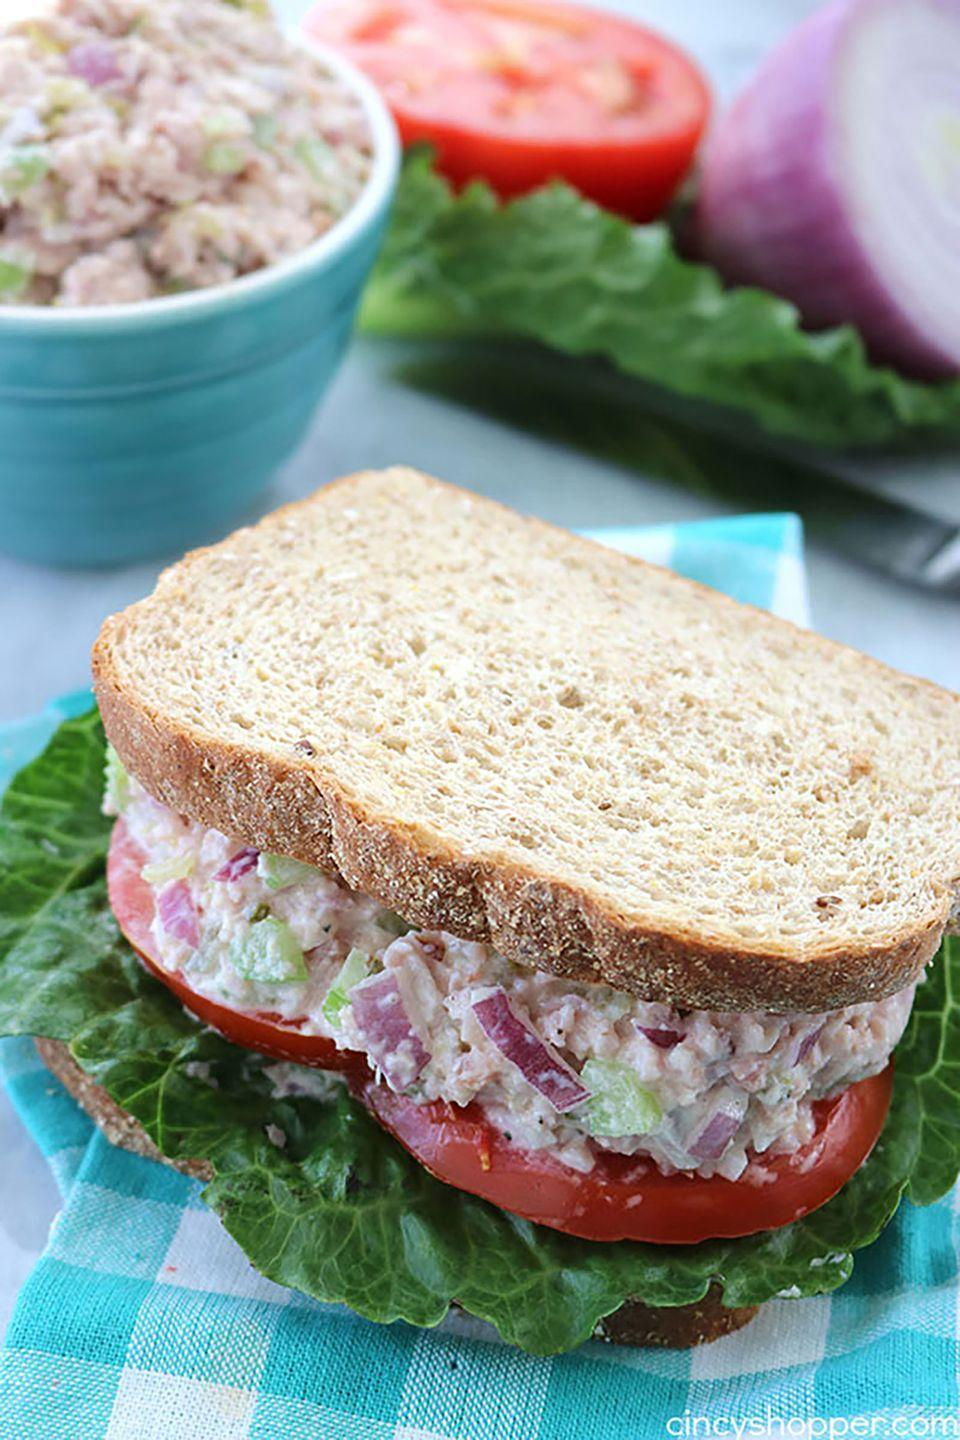 """<p>If you anticipate leftovers, go ahead and slice that Christmas ham early! This is one of the easiest ways to use up any extras.</p><p><strong>Get the recipe at <a href=""""http://cincyshopper.com/ham-salad/"""" rel=""""nofollow noopener"""" target=""""_blank"""" data-ylk=""""slk:Cincy Shopper"""" class=""""link rapid-noclick-resp"""">Cincy Shopper</a>.</strong><br></p>"""